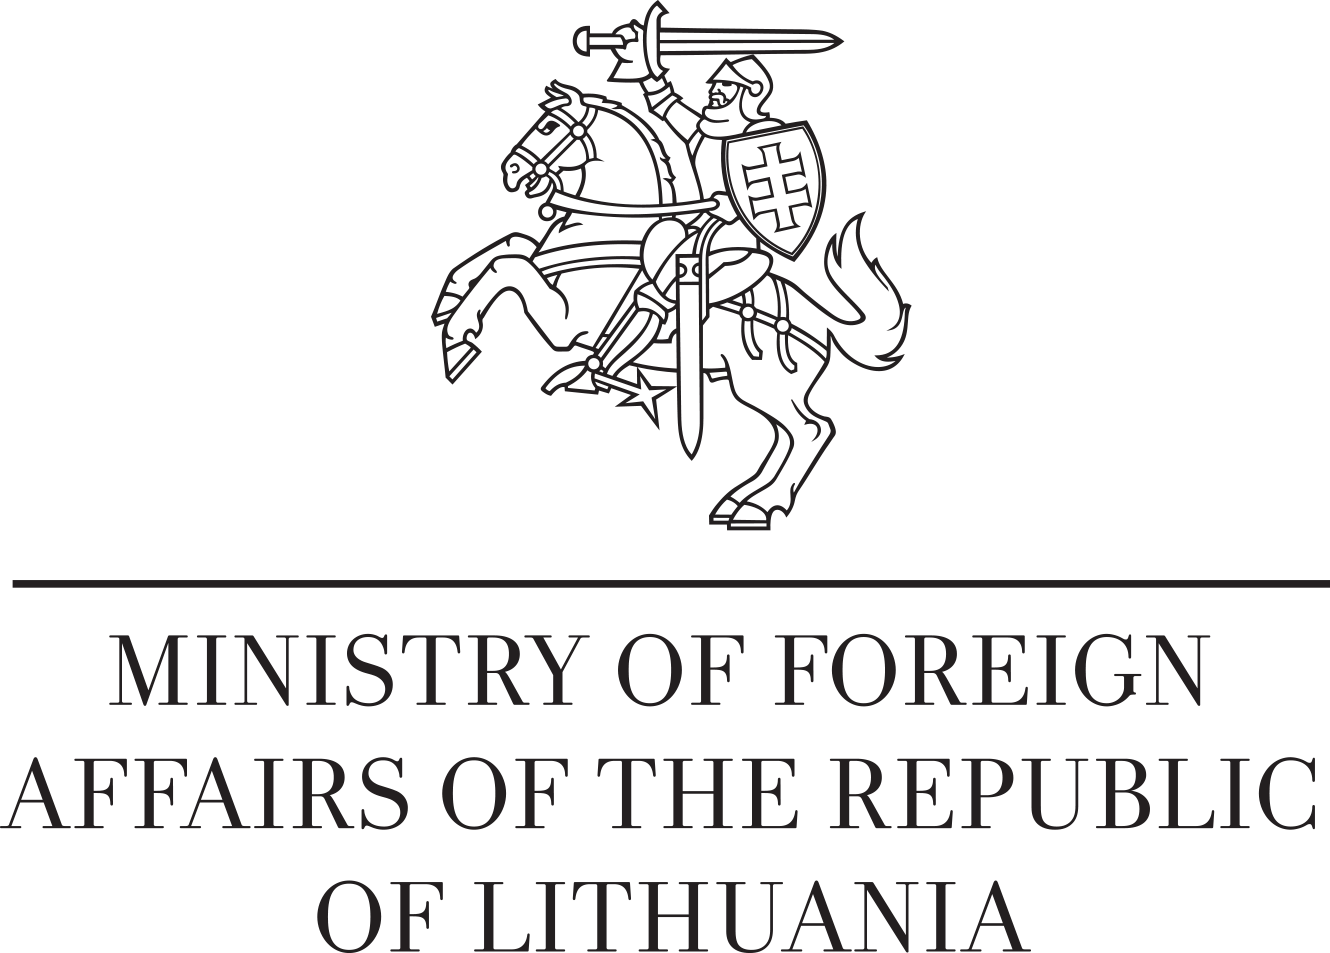 Lithuania Ministry of Foreign Affairs